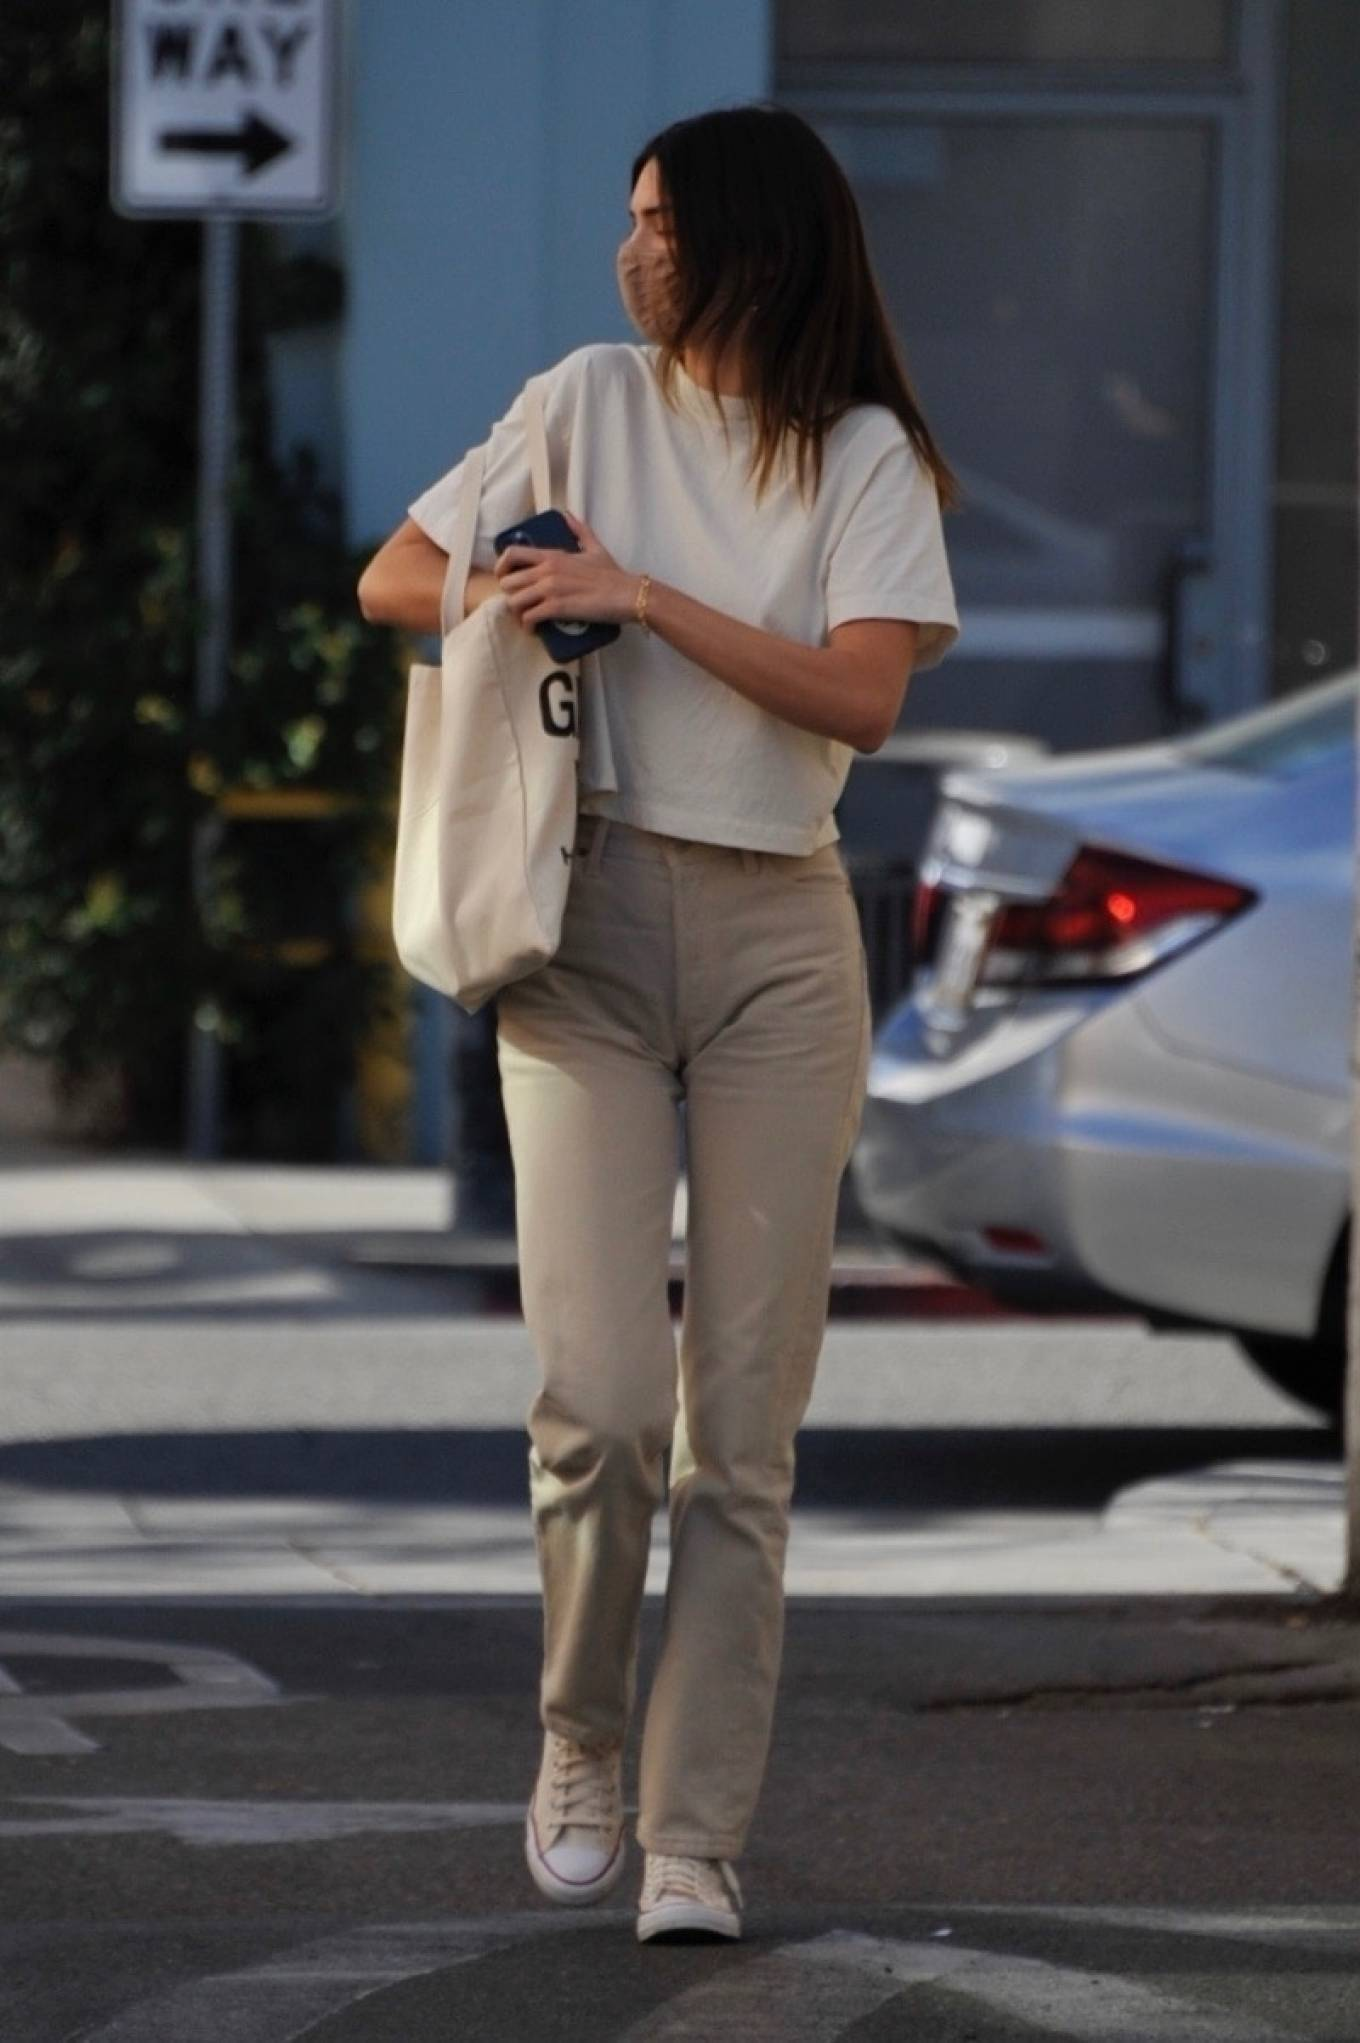 Kendall Jenner donning a relaxed fit white crop top while going to have lunch